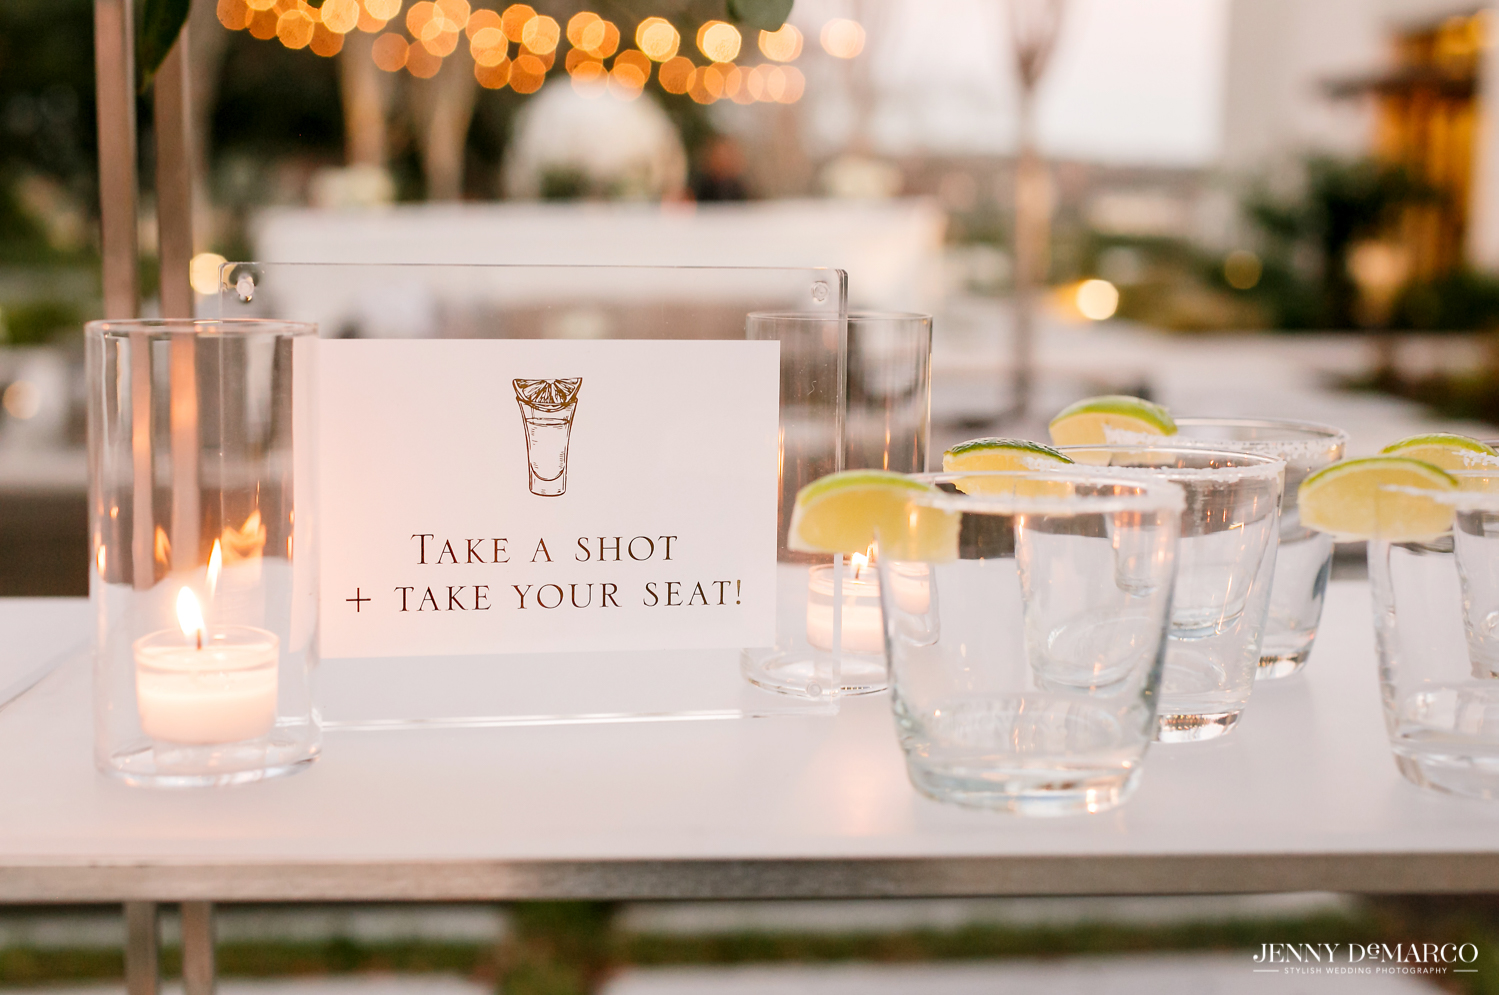 take a shot or take your seat shot bar sign and glasses